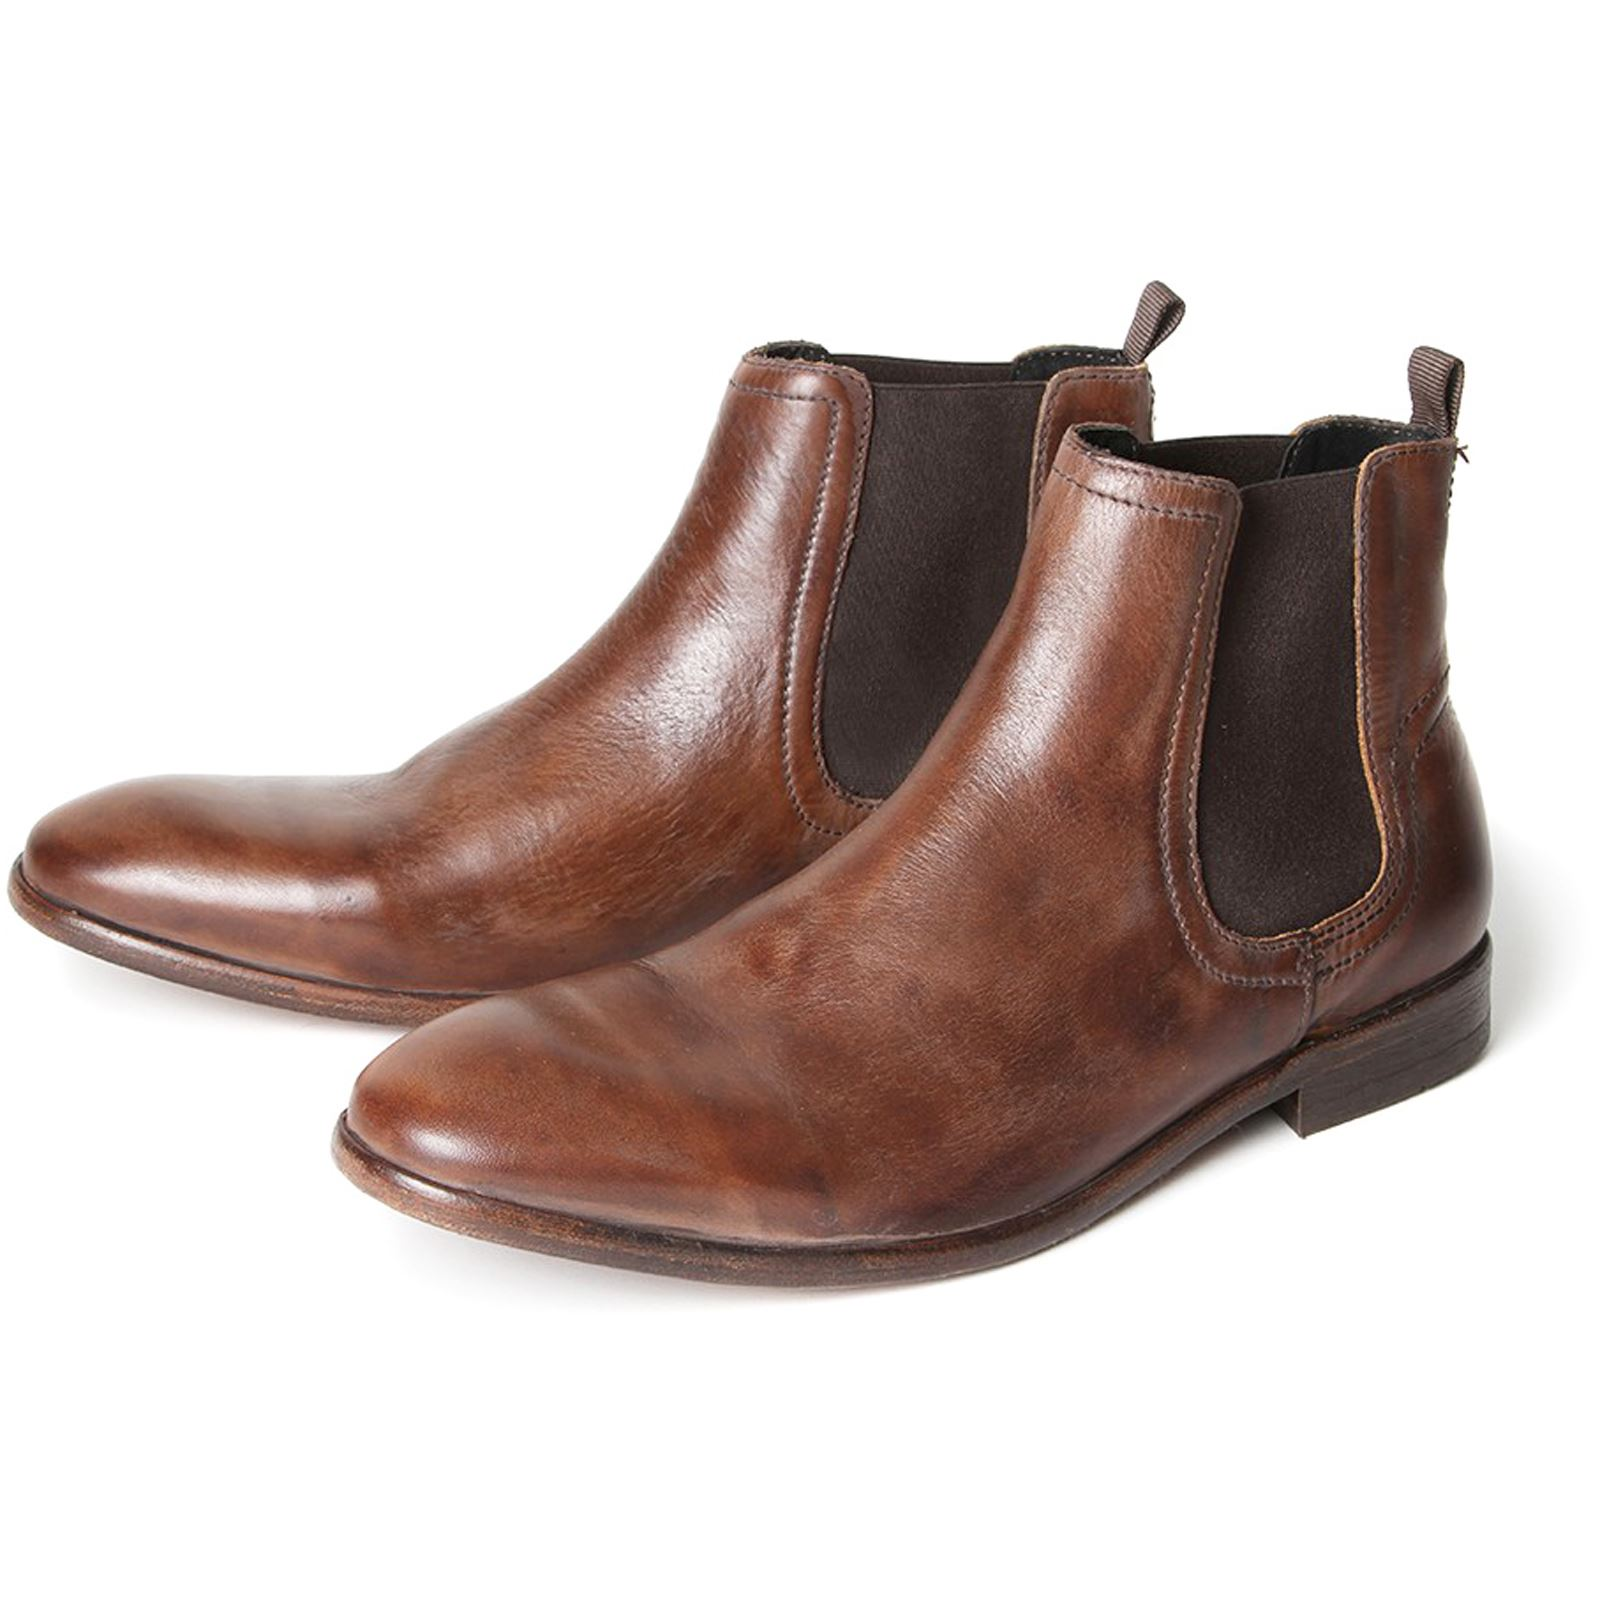 Mens Leather Chelsea Boots - Boot Hto